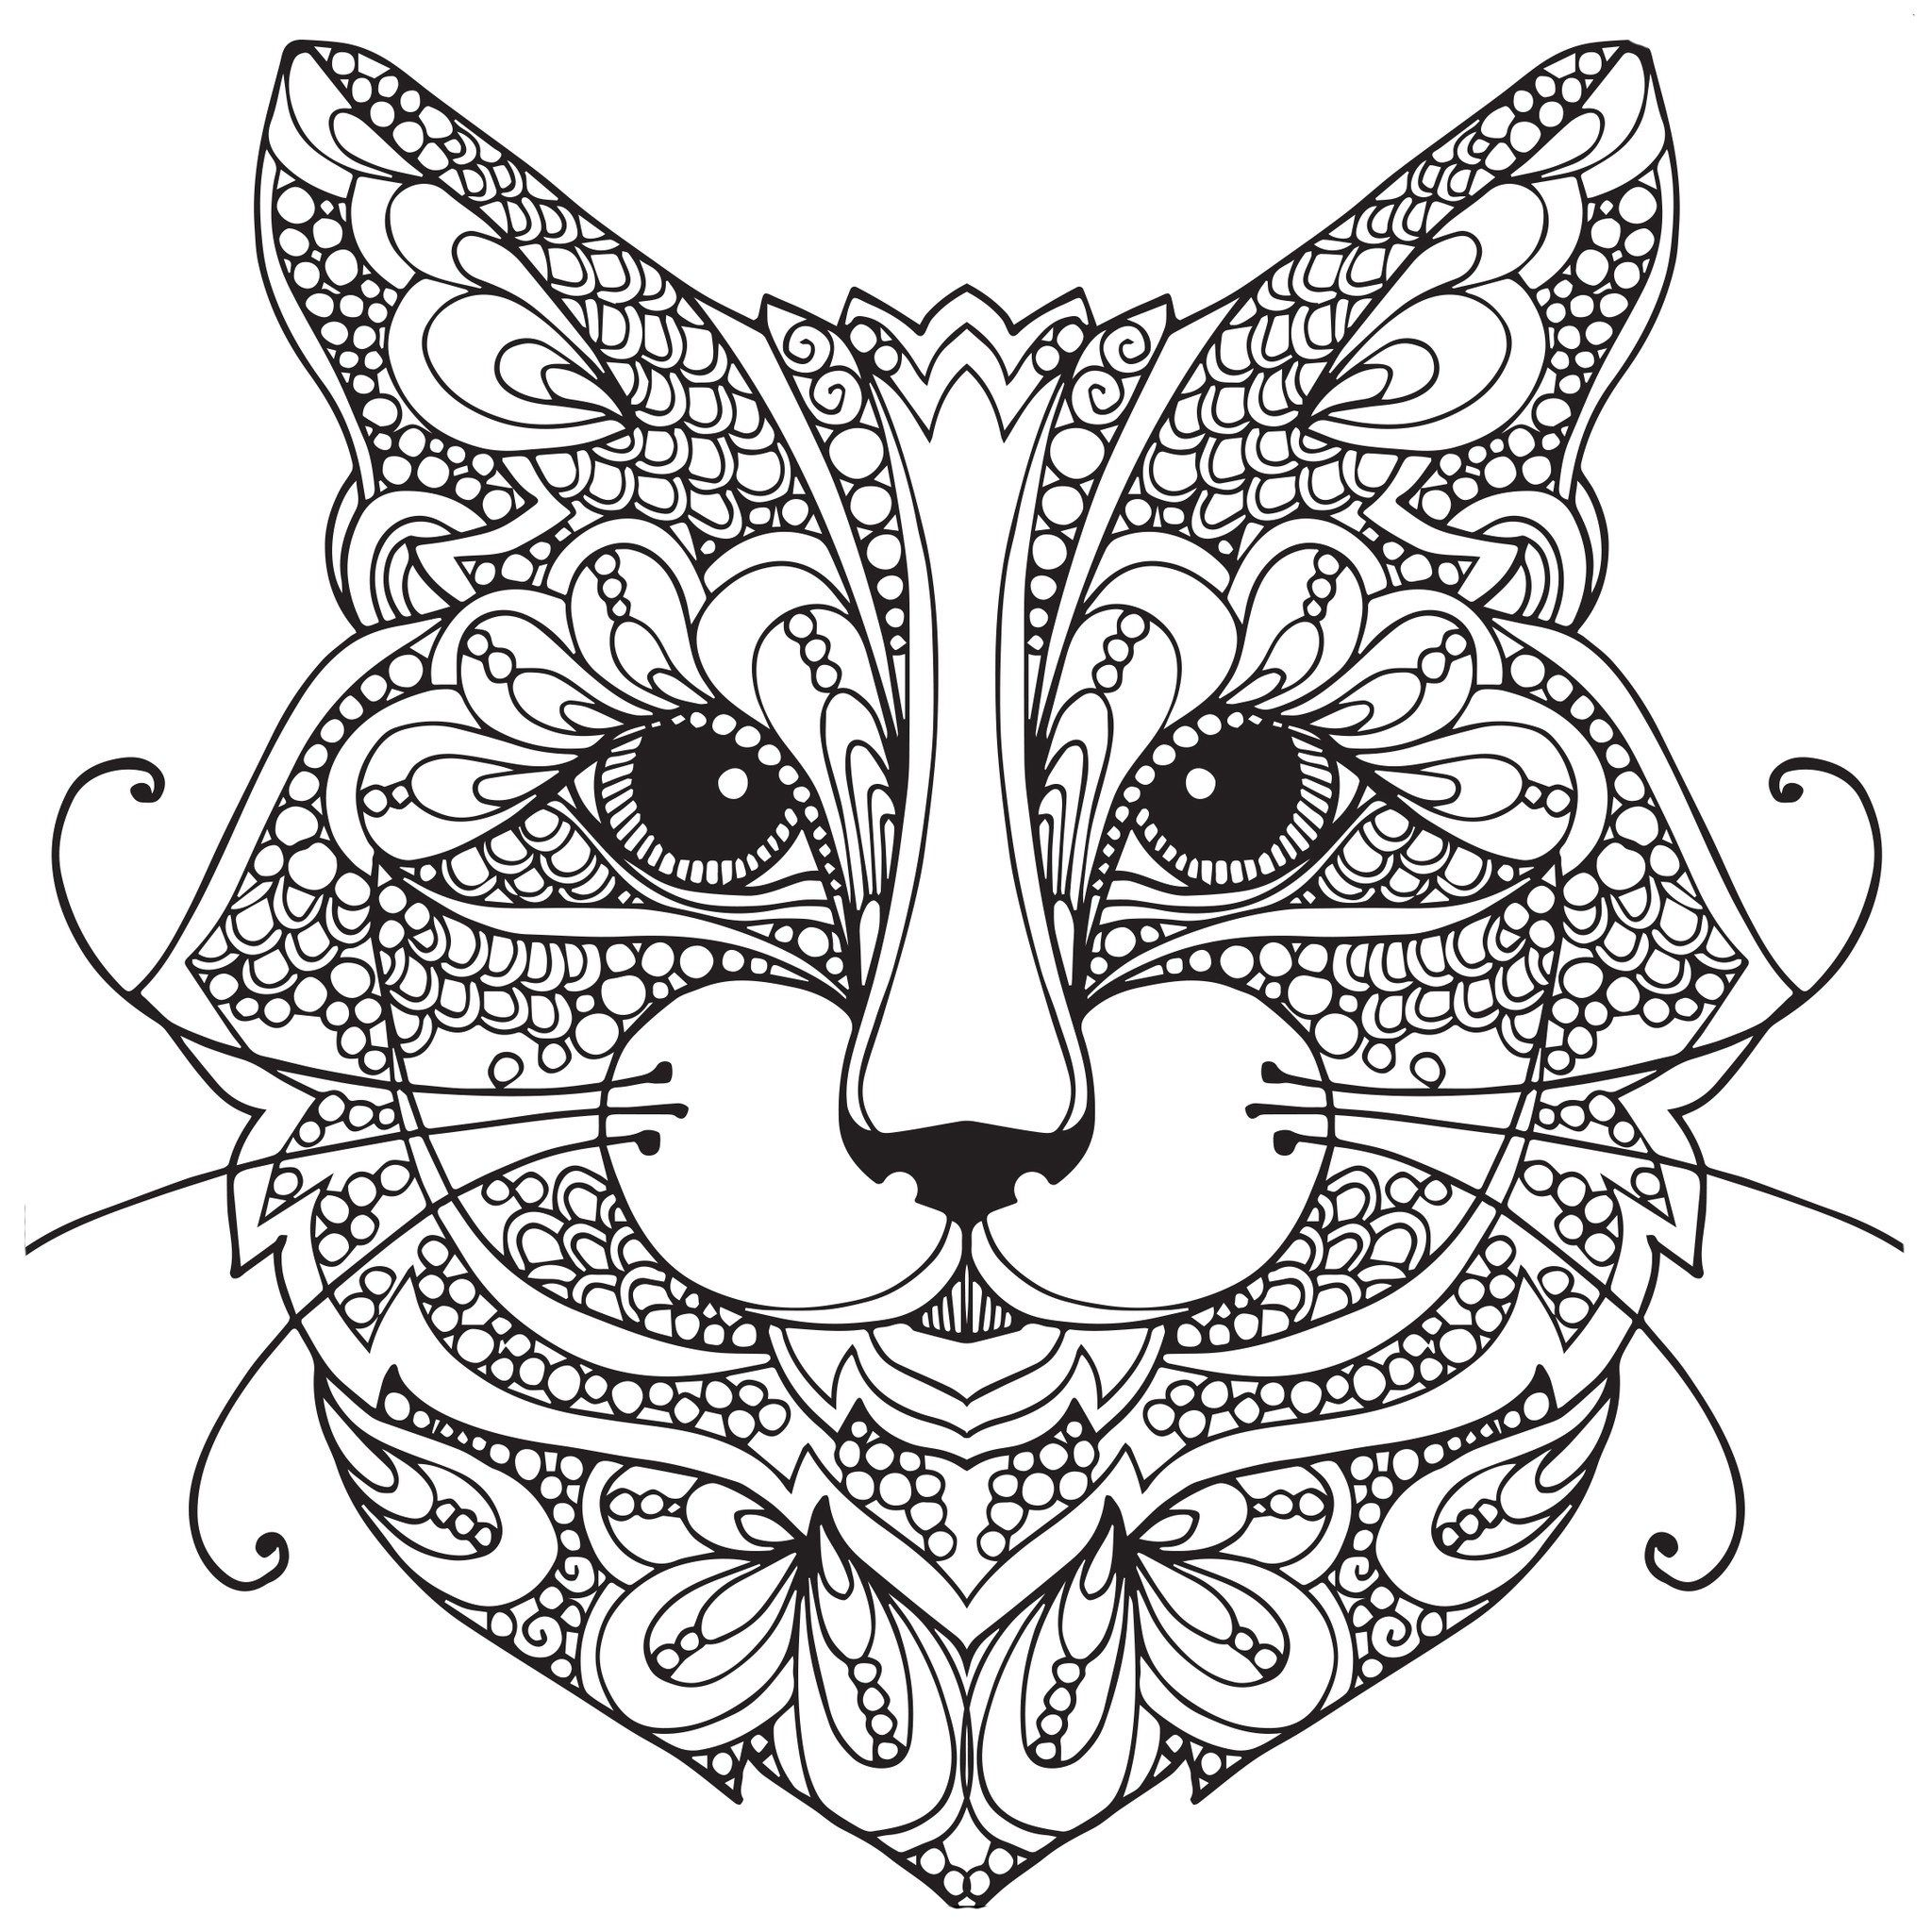 Intricate Cat Coloring Pages : Adult coloring pages cat pinterest